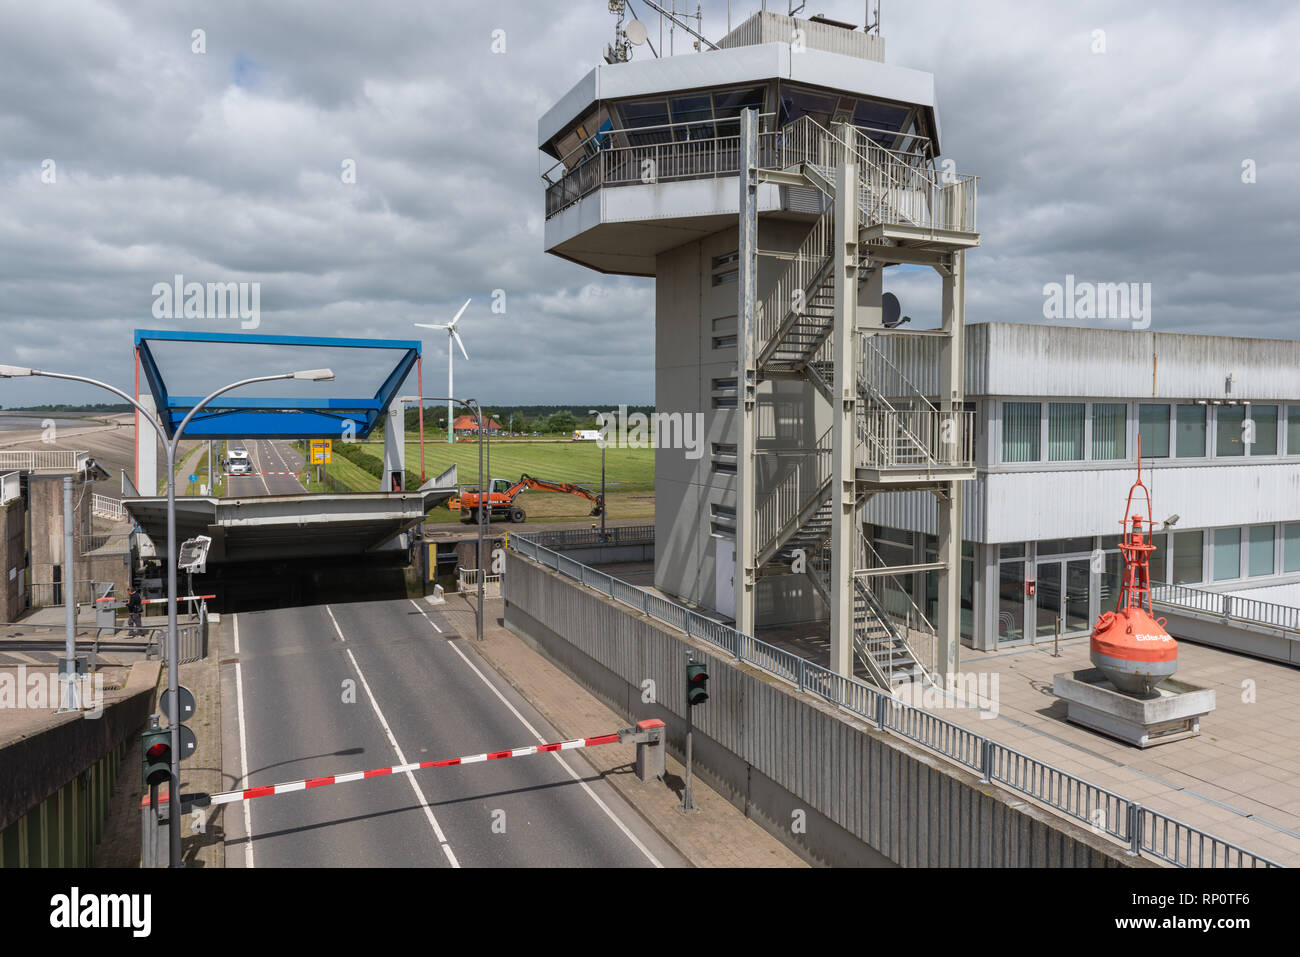 Flood barrier of the Eider River avoiding the North Sea flooding the inland marshes, Wesselburenkoog, Dithmarschen, Schleswig-Holstein, Germany - Stock Image